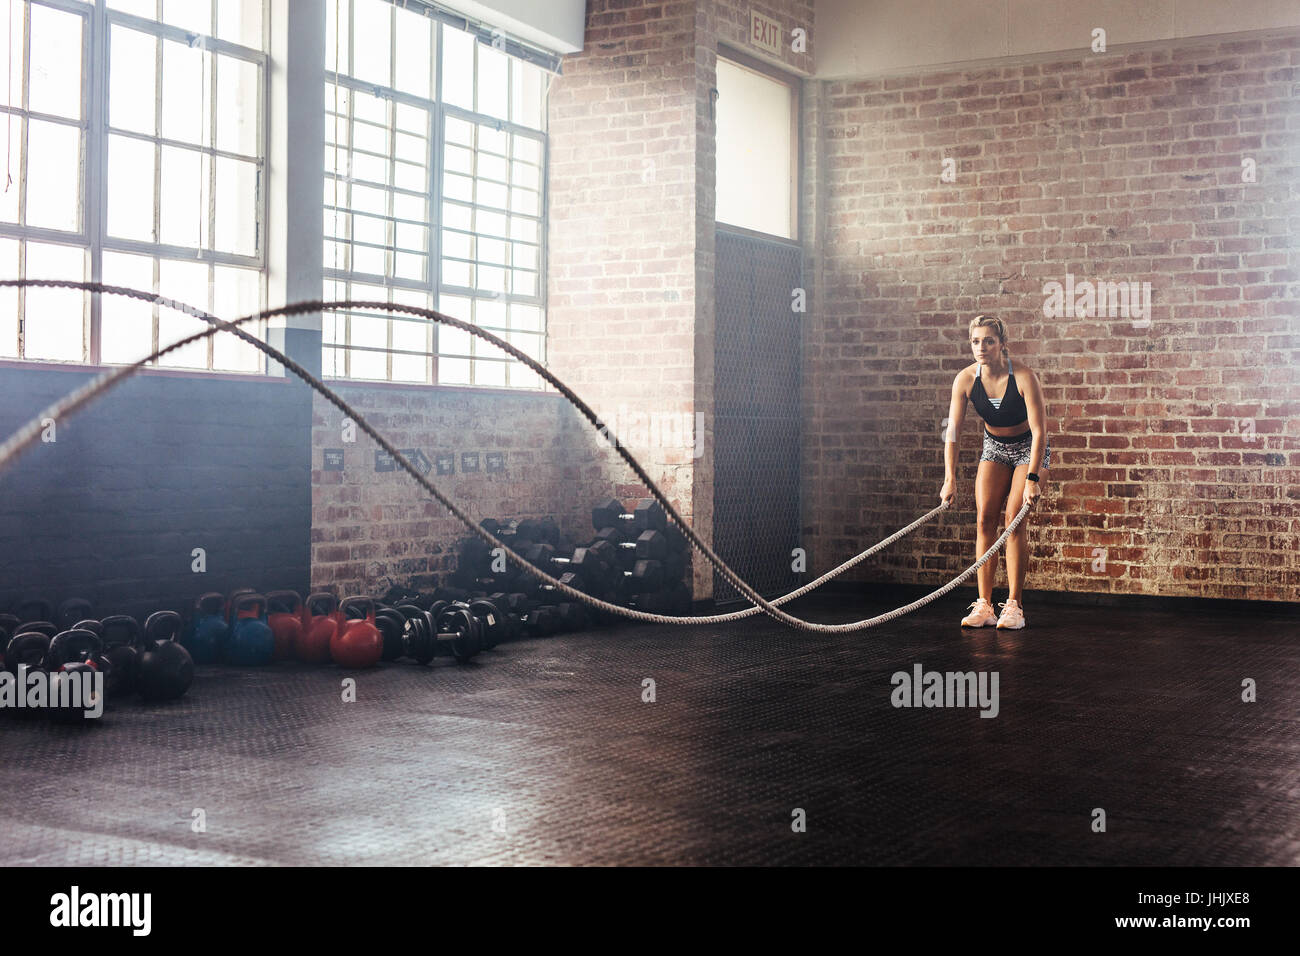 Woman using training ropes for exercise at the gym. Athlete moving the ropes in wave motion as part of strength - Stock Image